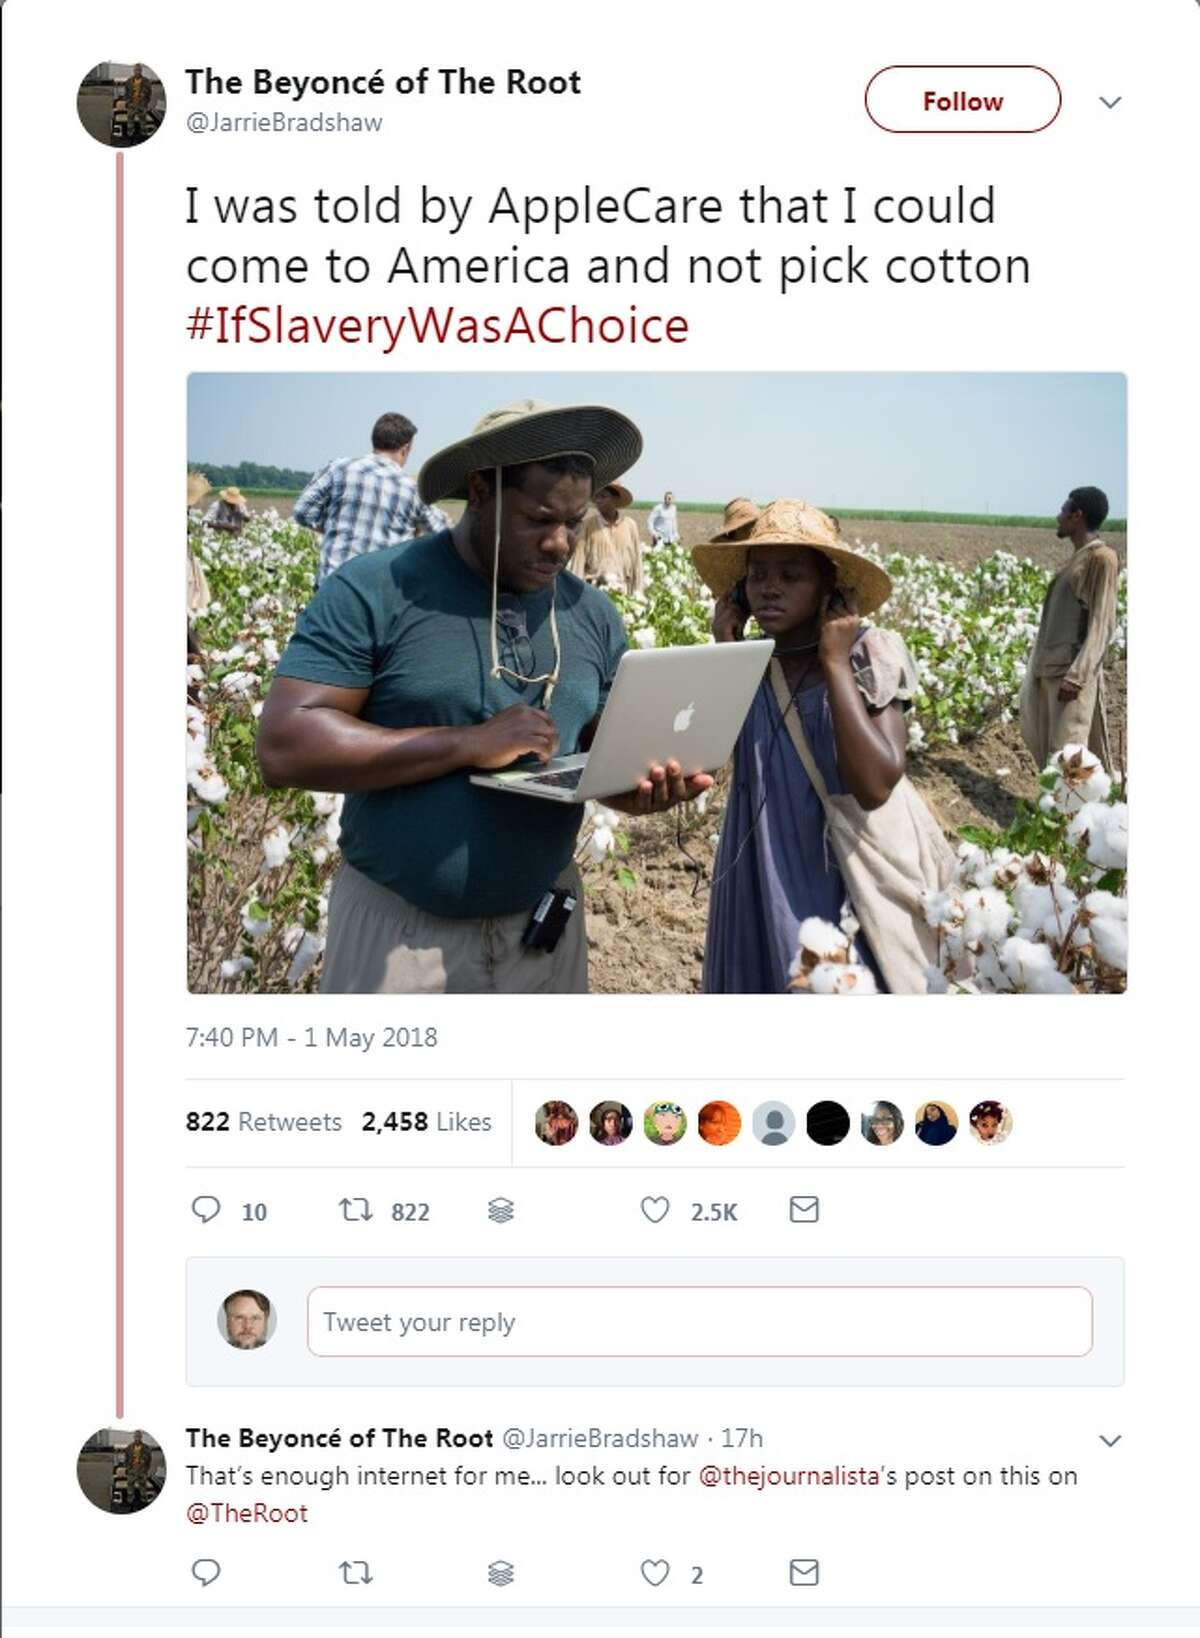 Kanye West was relentlessly mocked by a new hashtag - #IfSlaveryWasAChoice - after saying on